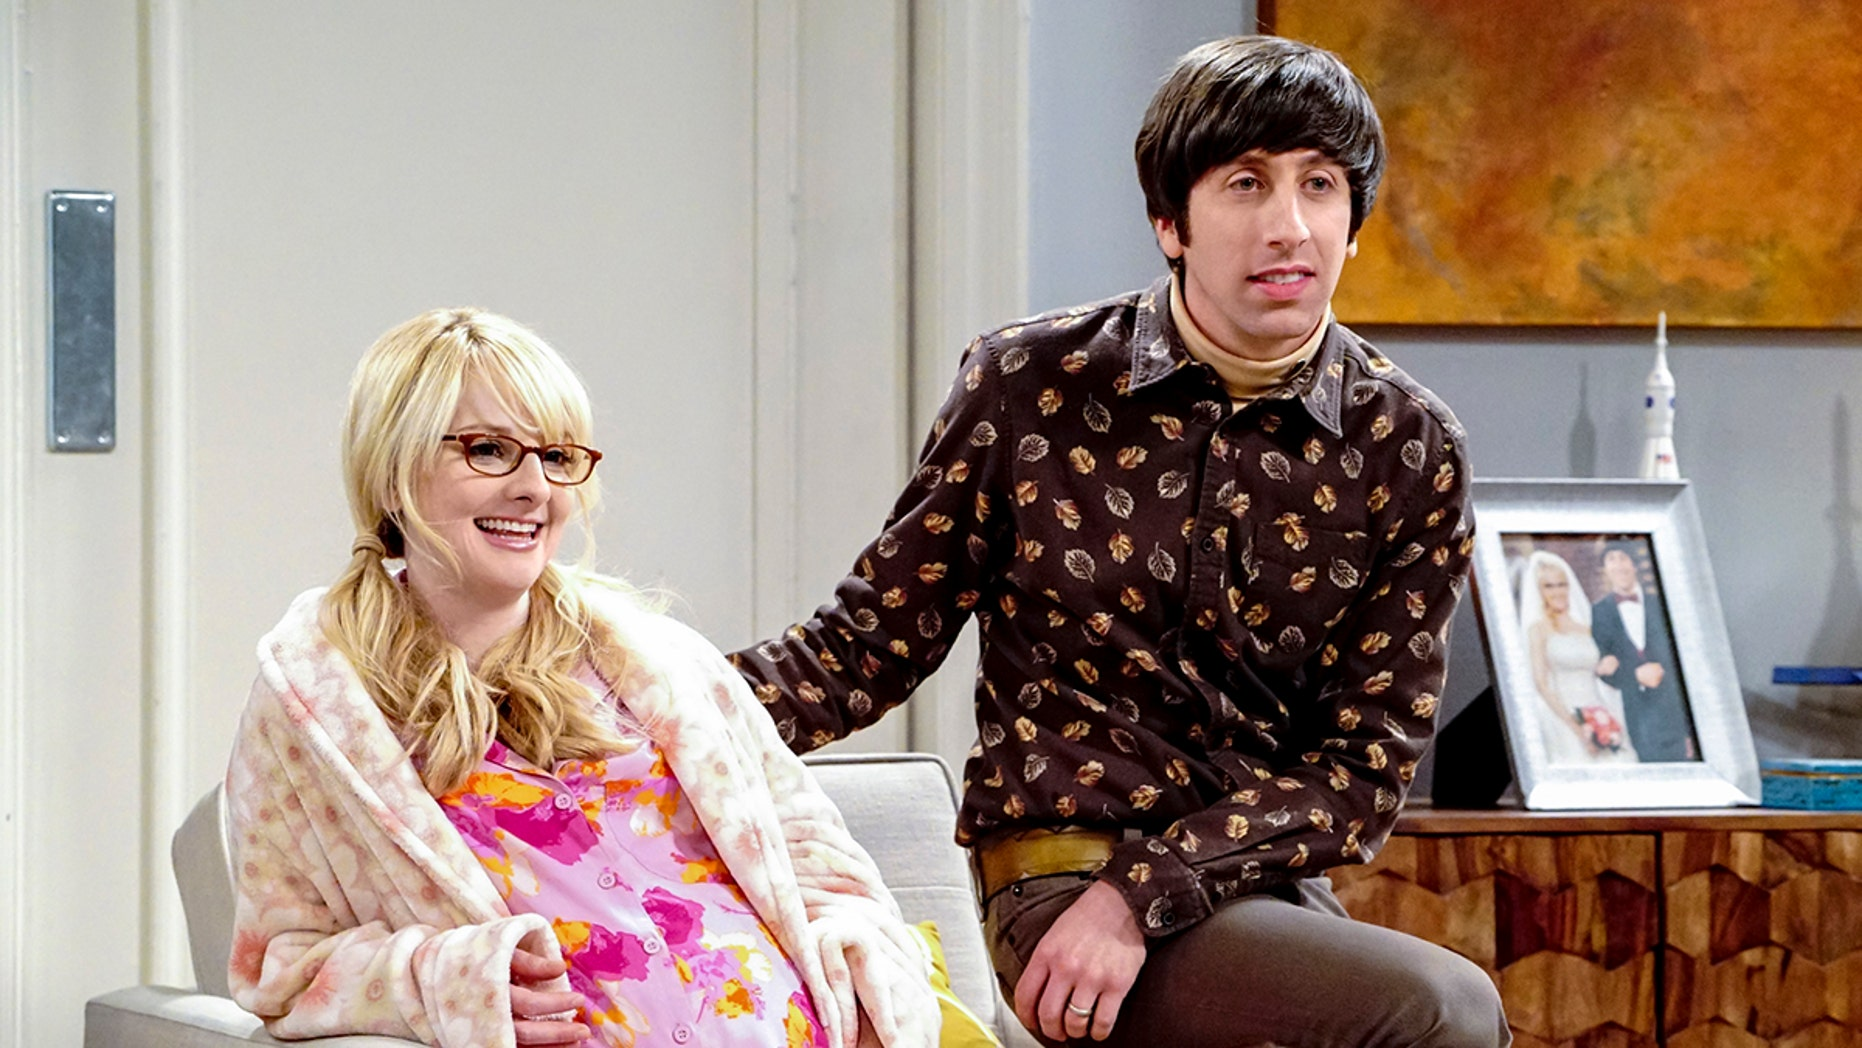 """""""The Neonatal Nomenclature""""- Pictured: Bernadette (Melissa Rauch) and Howard Wolowitz (Simon Helberg). When Bernadette won't go into labor, all her friends try different tactics to get things started. Also, Wolowitz confronts Bernadette after Amy accidentally reveals she's already chosen their son's name, on THE BIG BANG THEORY, Thursday, March 1 (8:00-8:31 PM, ET/PT), on the CBS Television Network. Photo: Bill Inoshita/CBS ©2018 CBS Broadcasting, Inc. All Rights Reserved."""